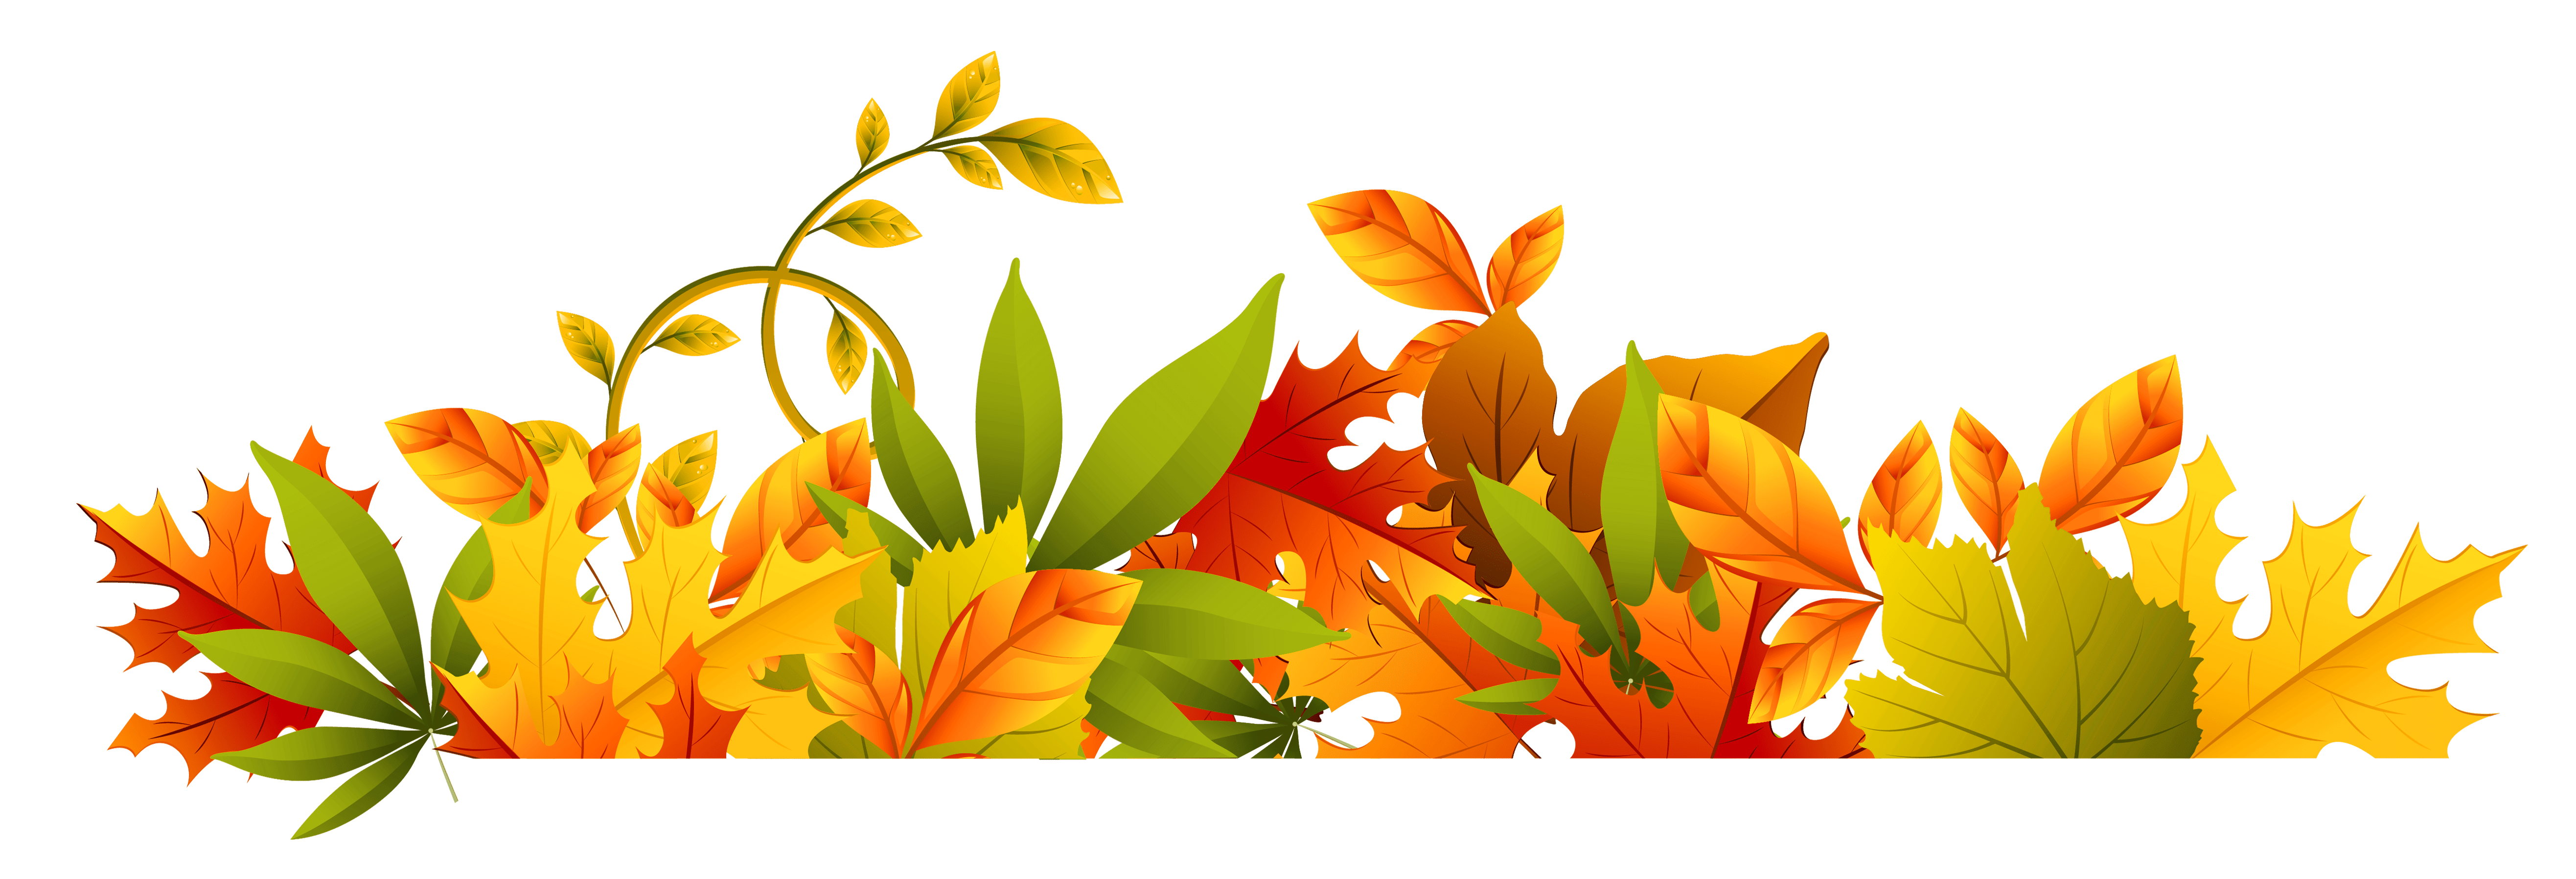 Fall flower clipart vector stock Fall flowers border new transparent autumn border png clipart ... vector stock